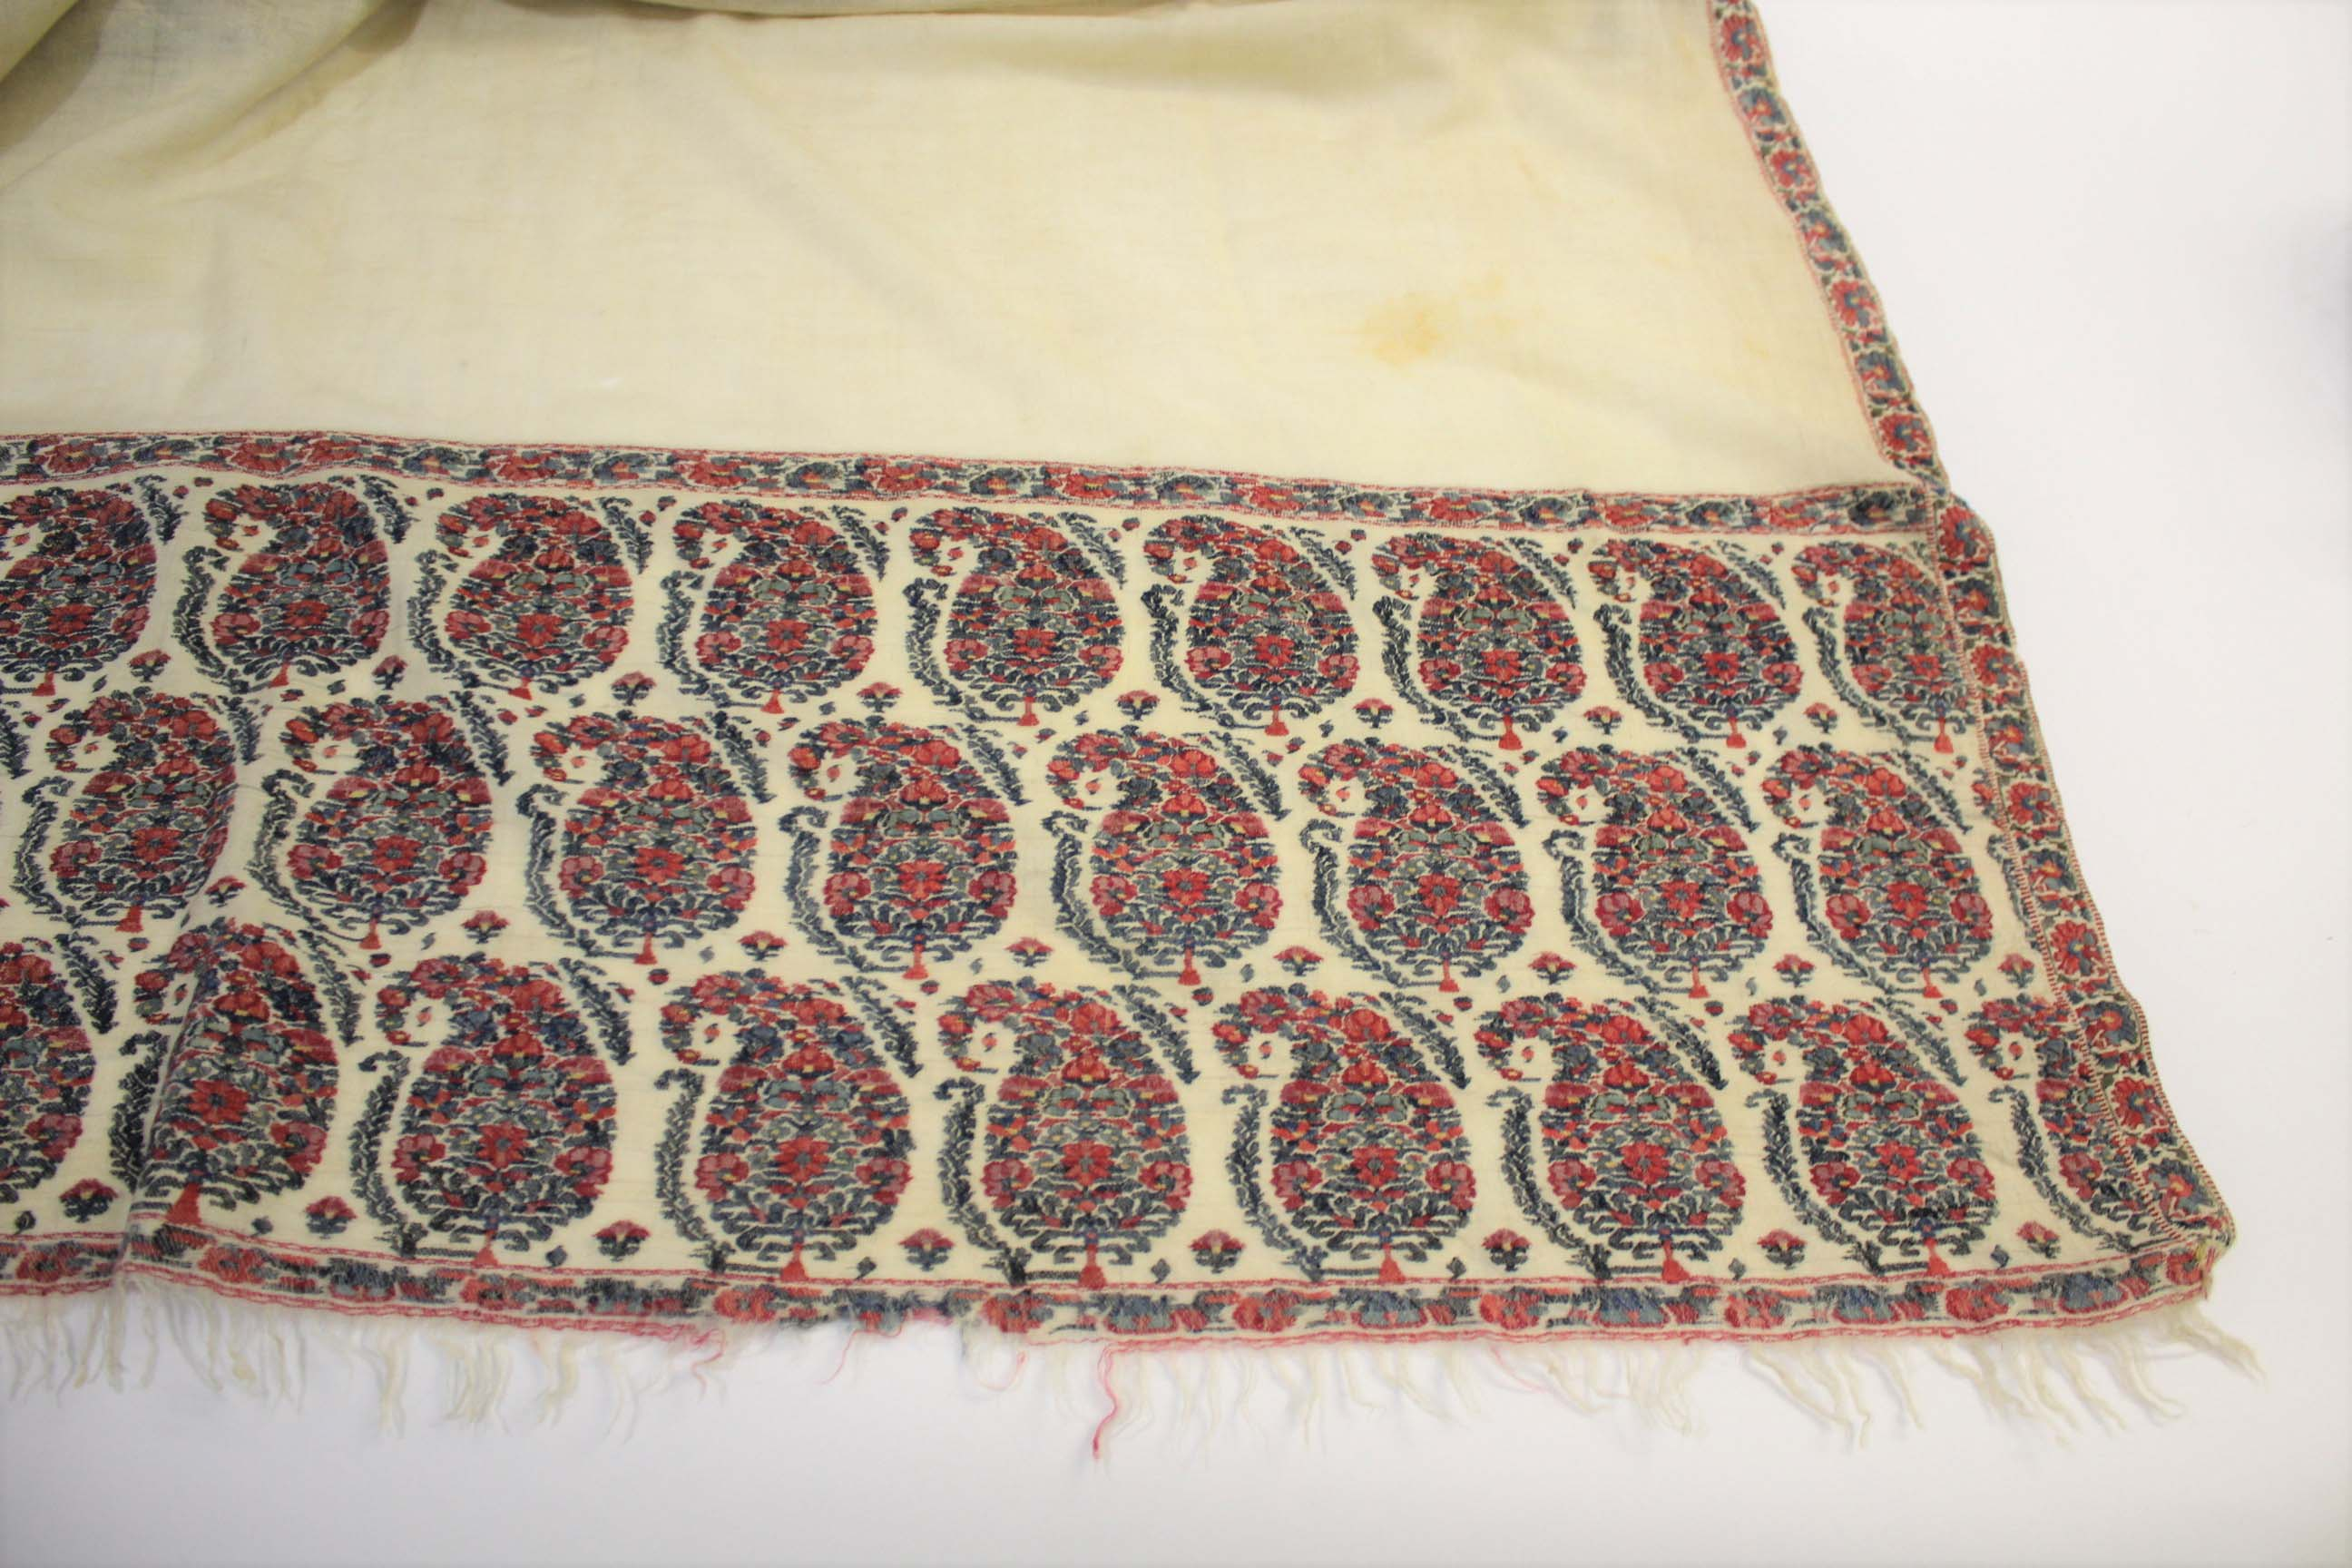 19THC PAISLEY SHAWL a mid 19thc paisley wool cashmere shawl (264cms by 126cms), and also with a fine - Image 2 of 9